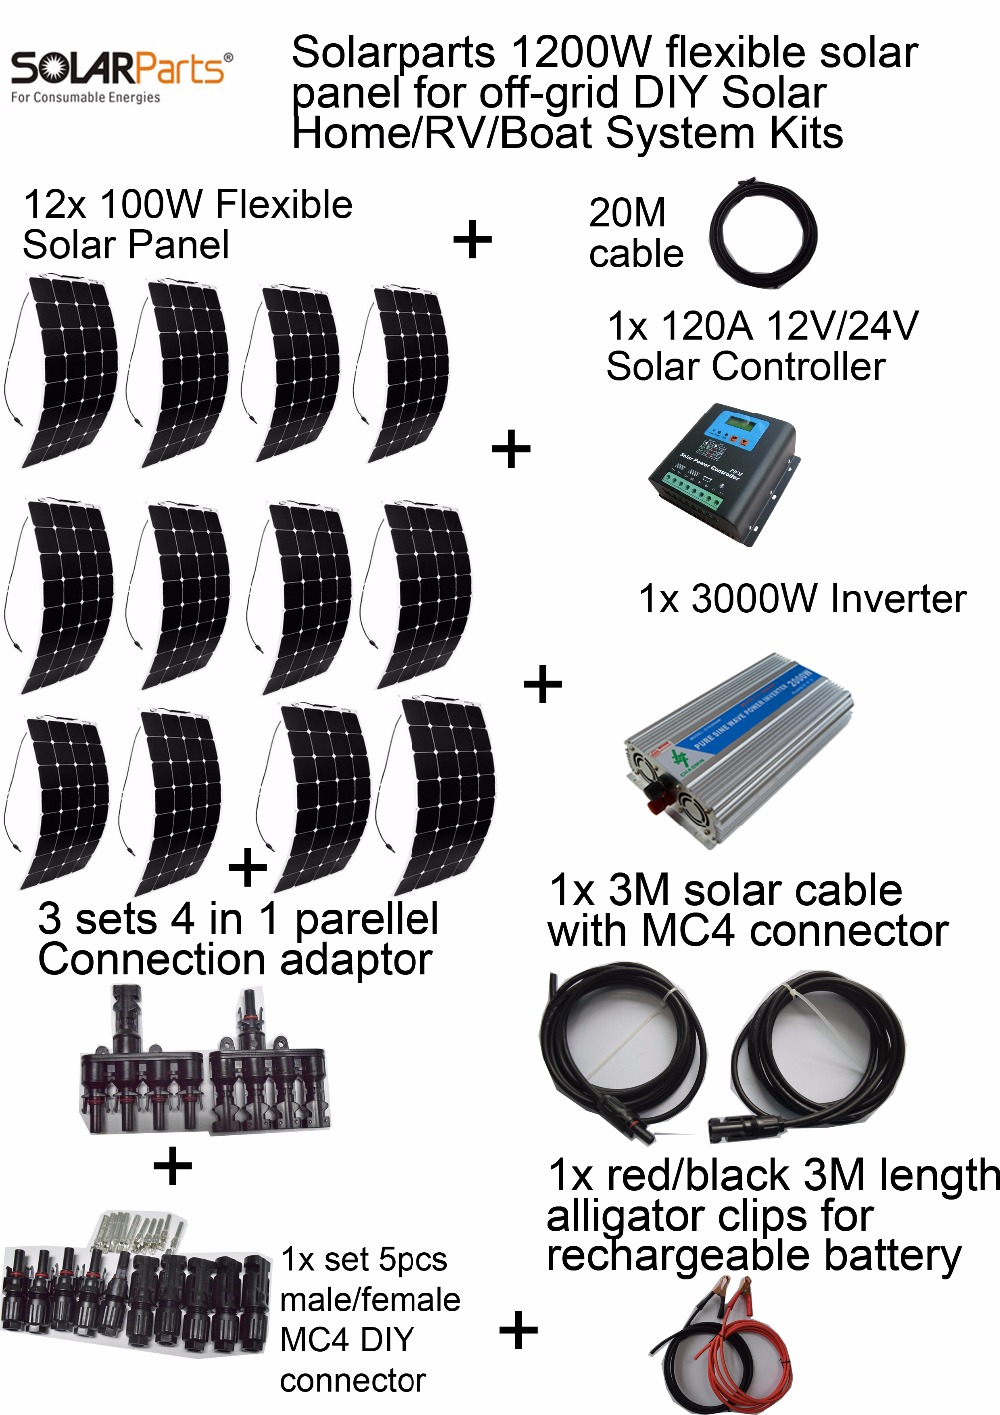 Clipart Silver Needle also Dmca  pliance together with Details in addition F35xlr2c in addition Ewrazphoto Nylon Sling Protector. on best flexible solar panel